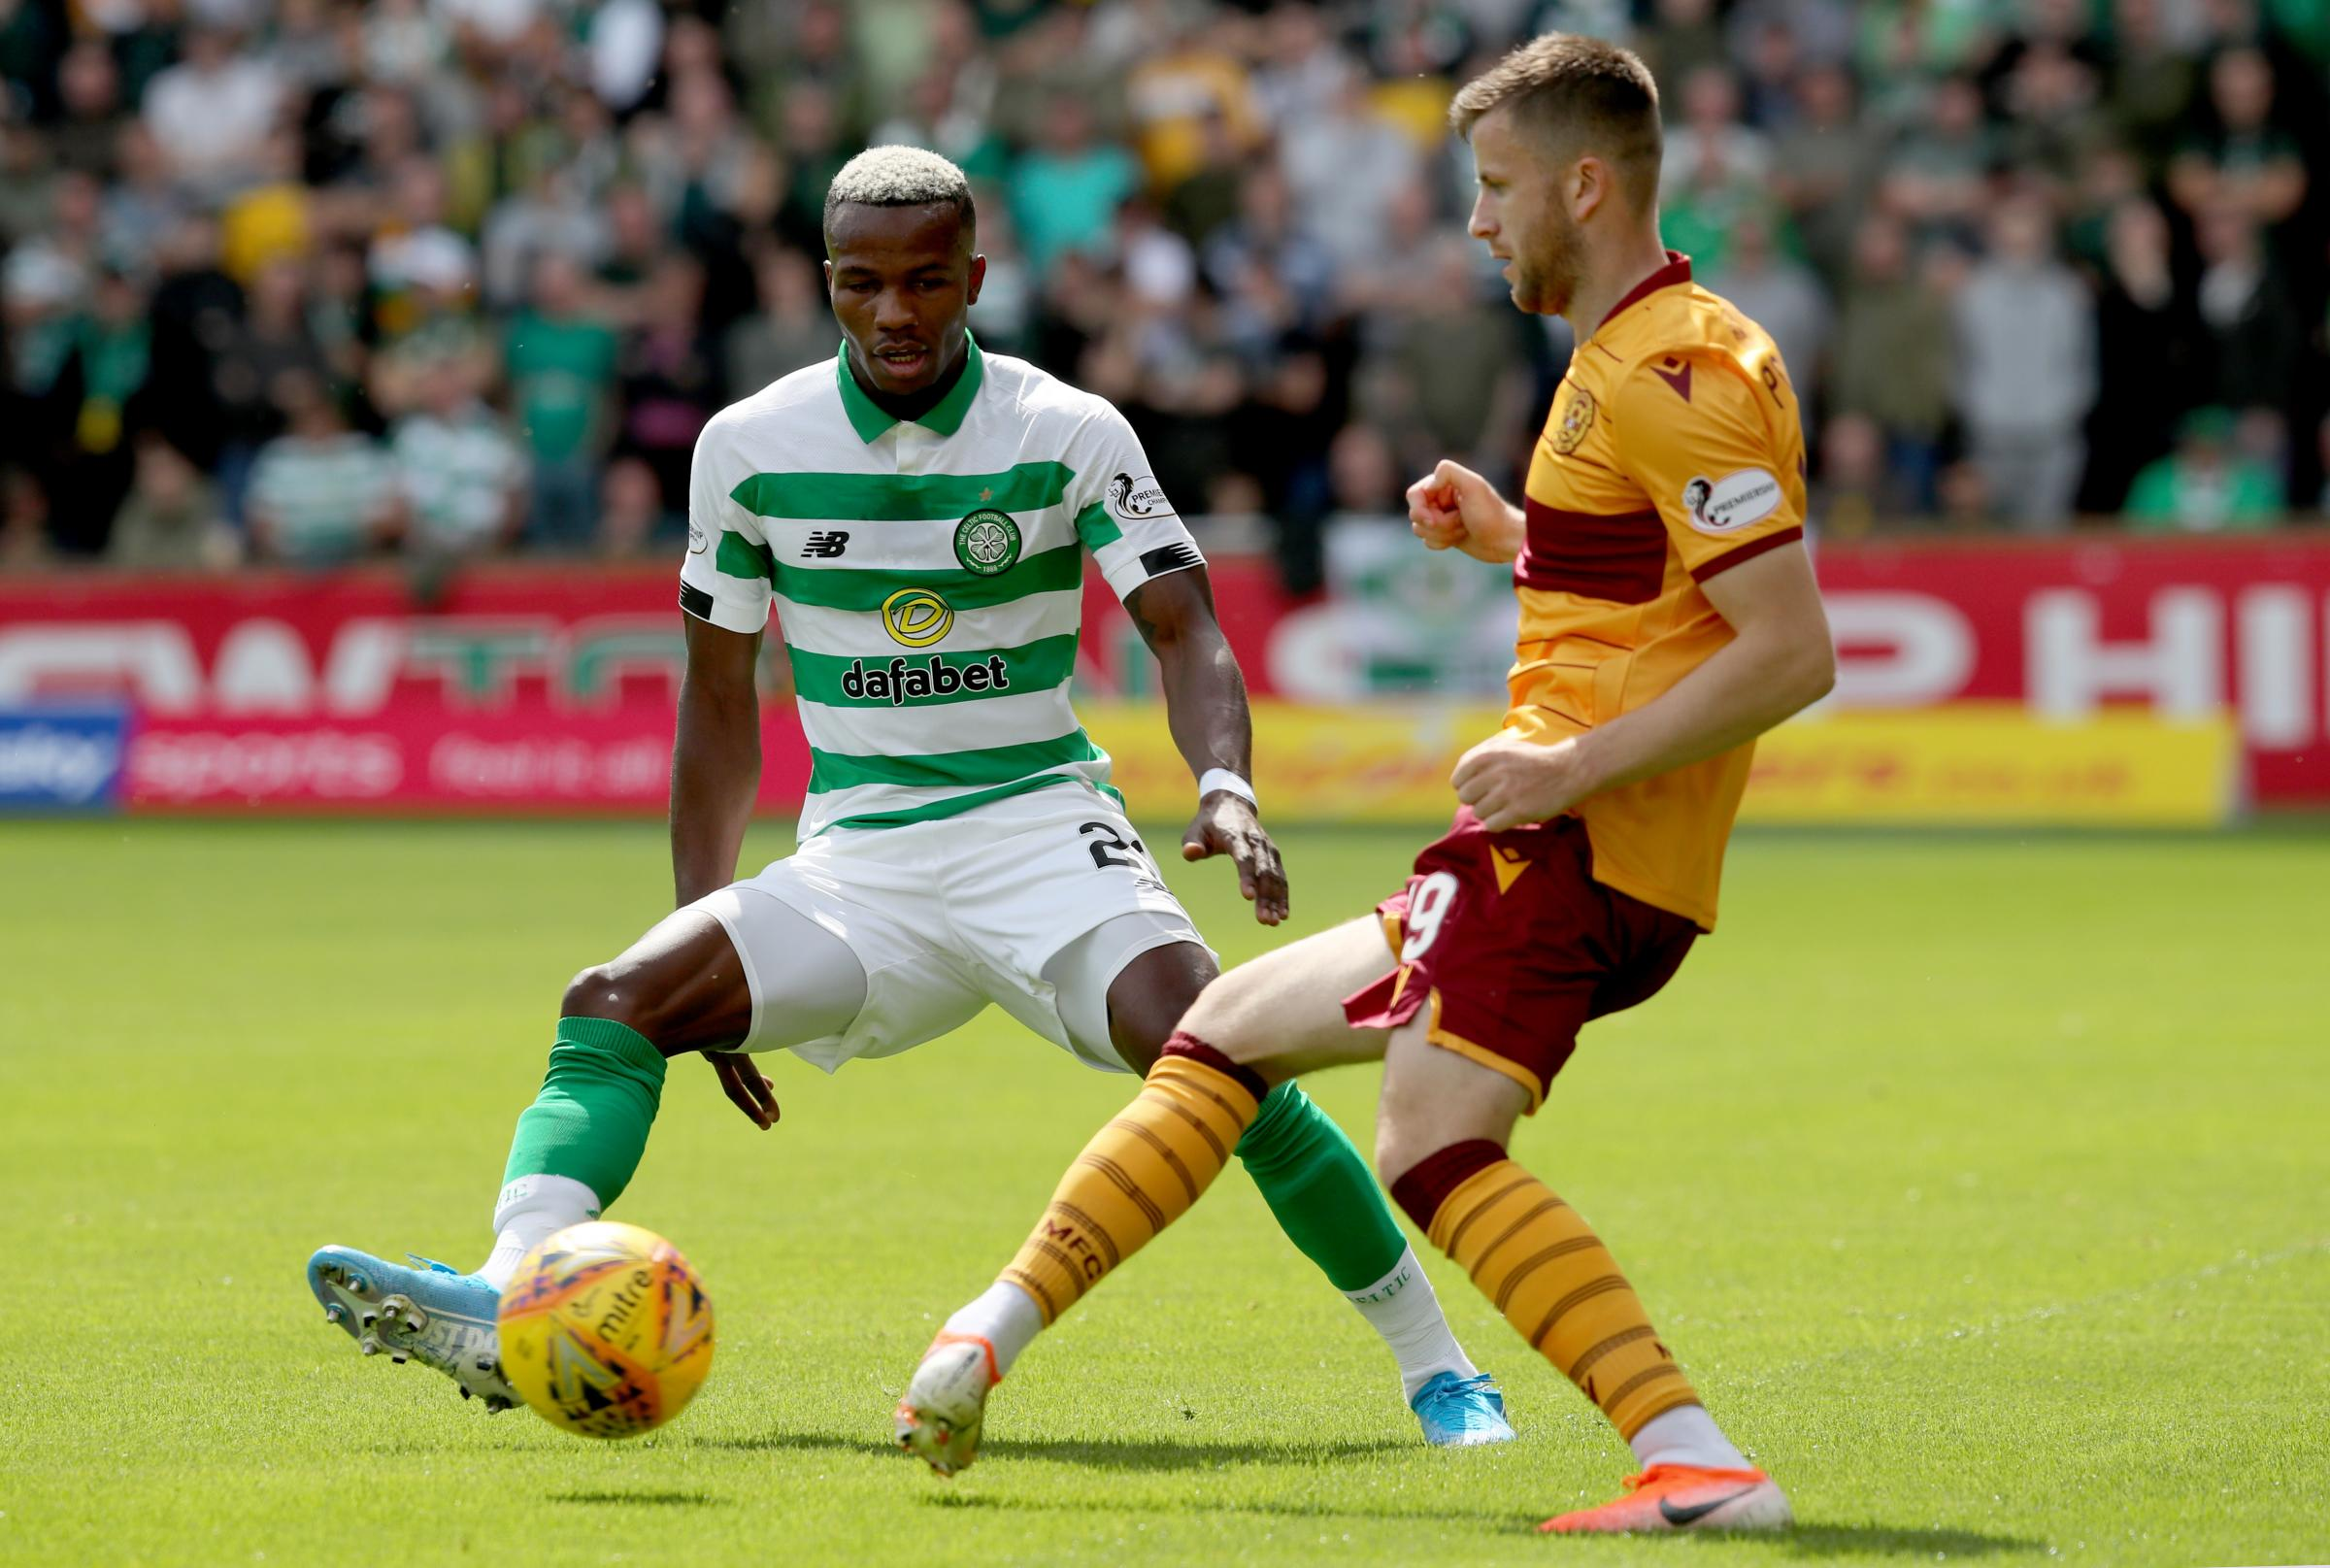 Celtic vs Motherwell: Is it on TV? What time is kick-off? Team news | Scottish Premiership action returns